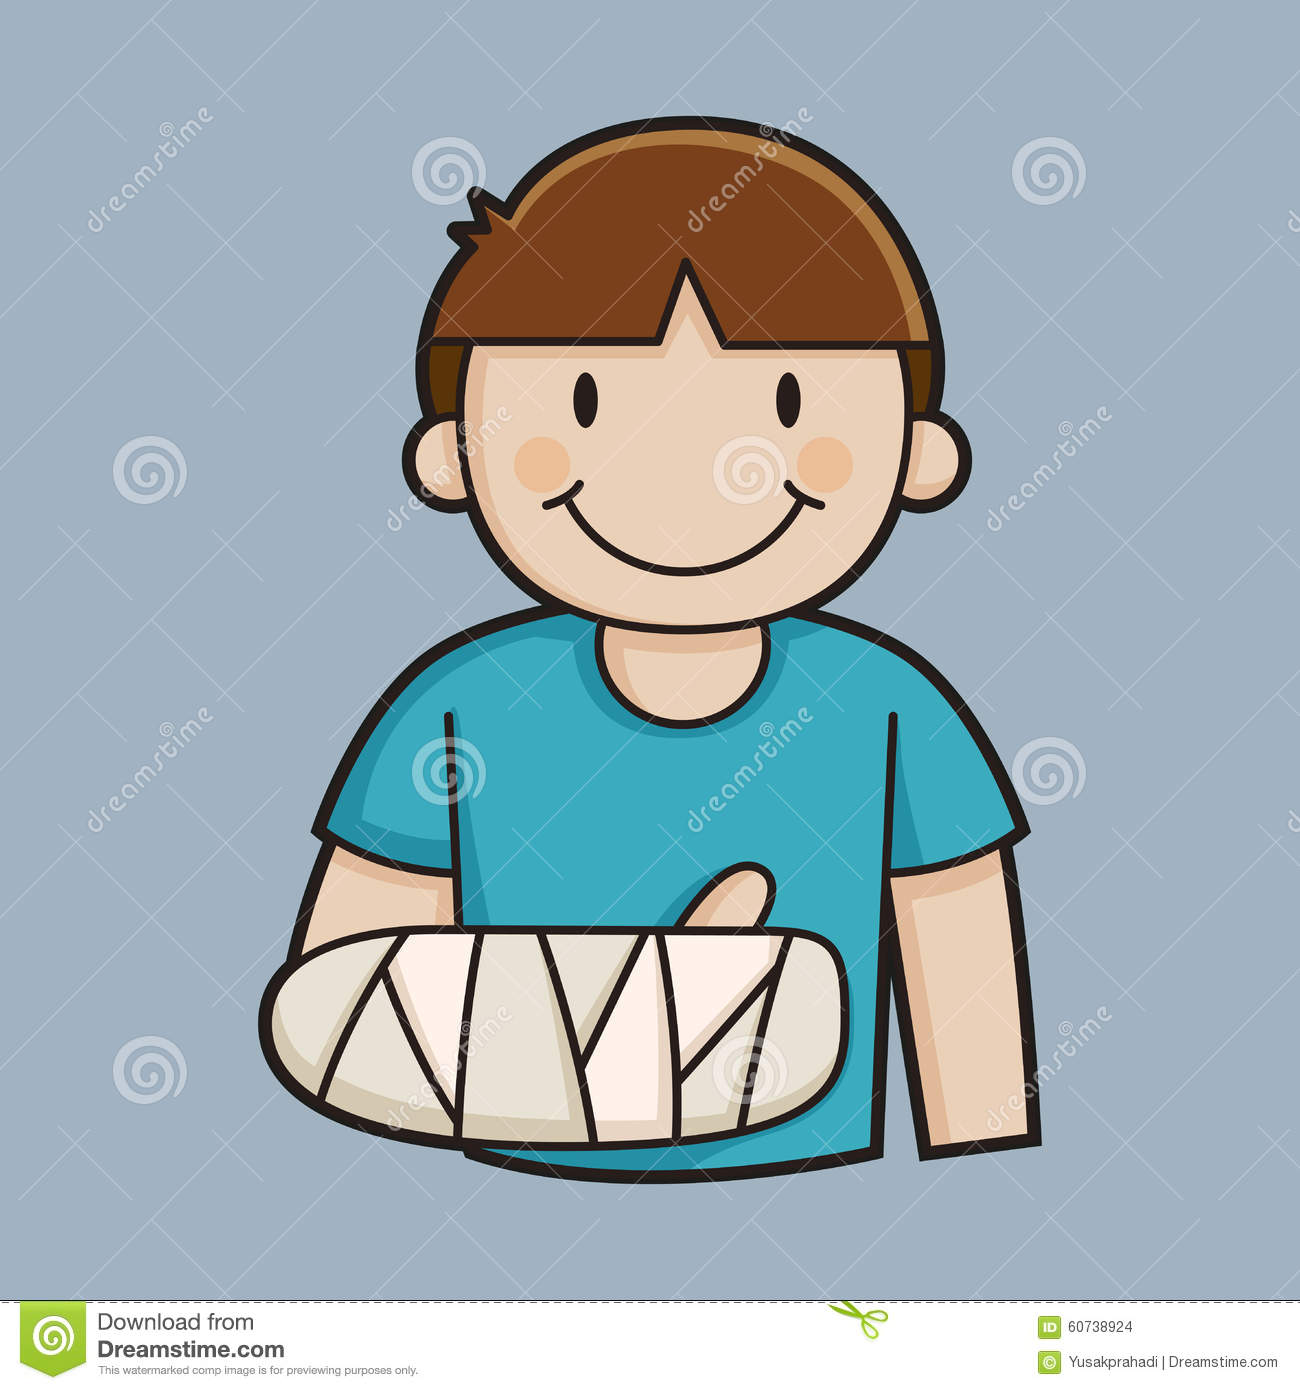 little boy broken arm stock illustrations 24 little boy broken arm rh dreamstime com Broken Arm Animated GIFs broken arm cast clipart